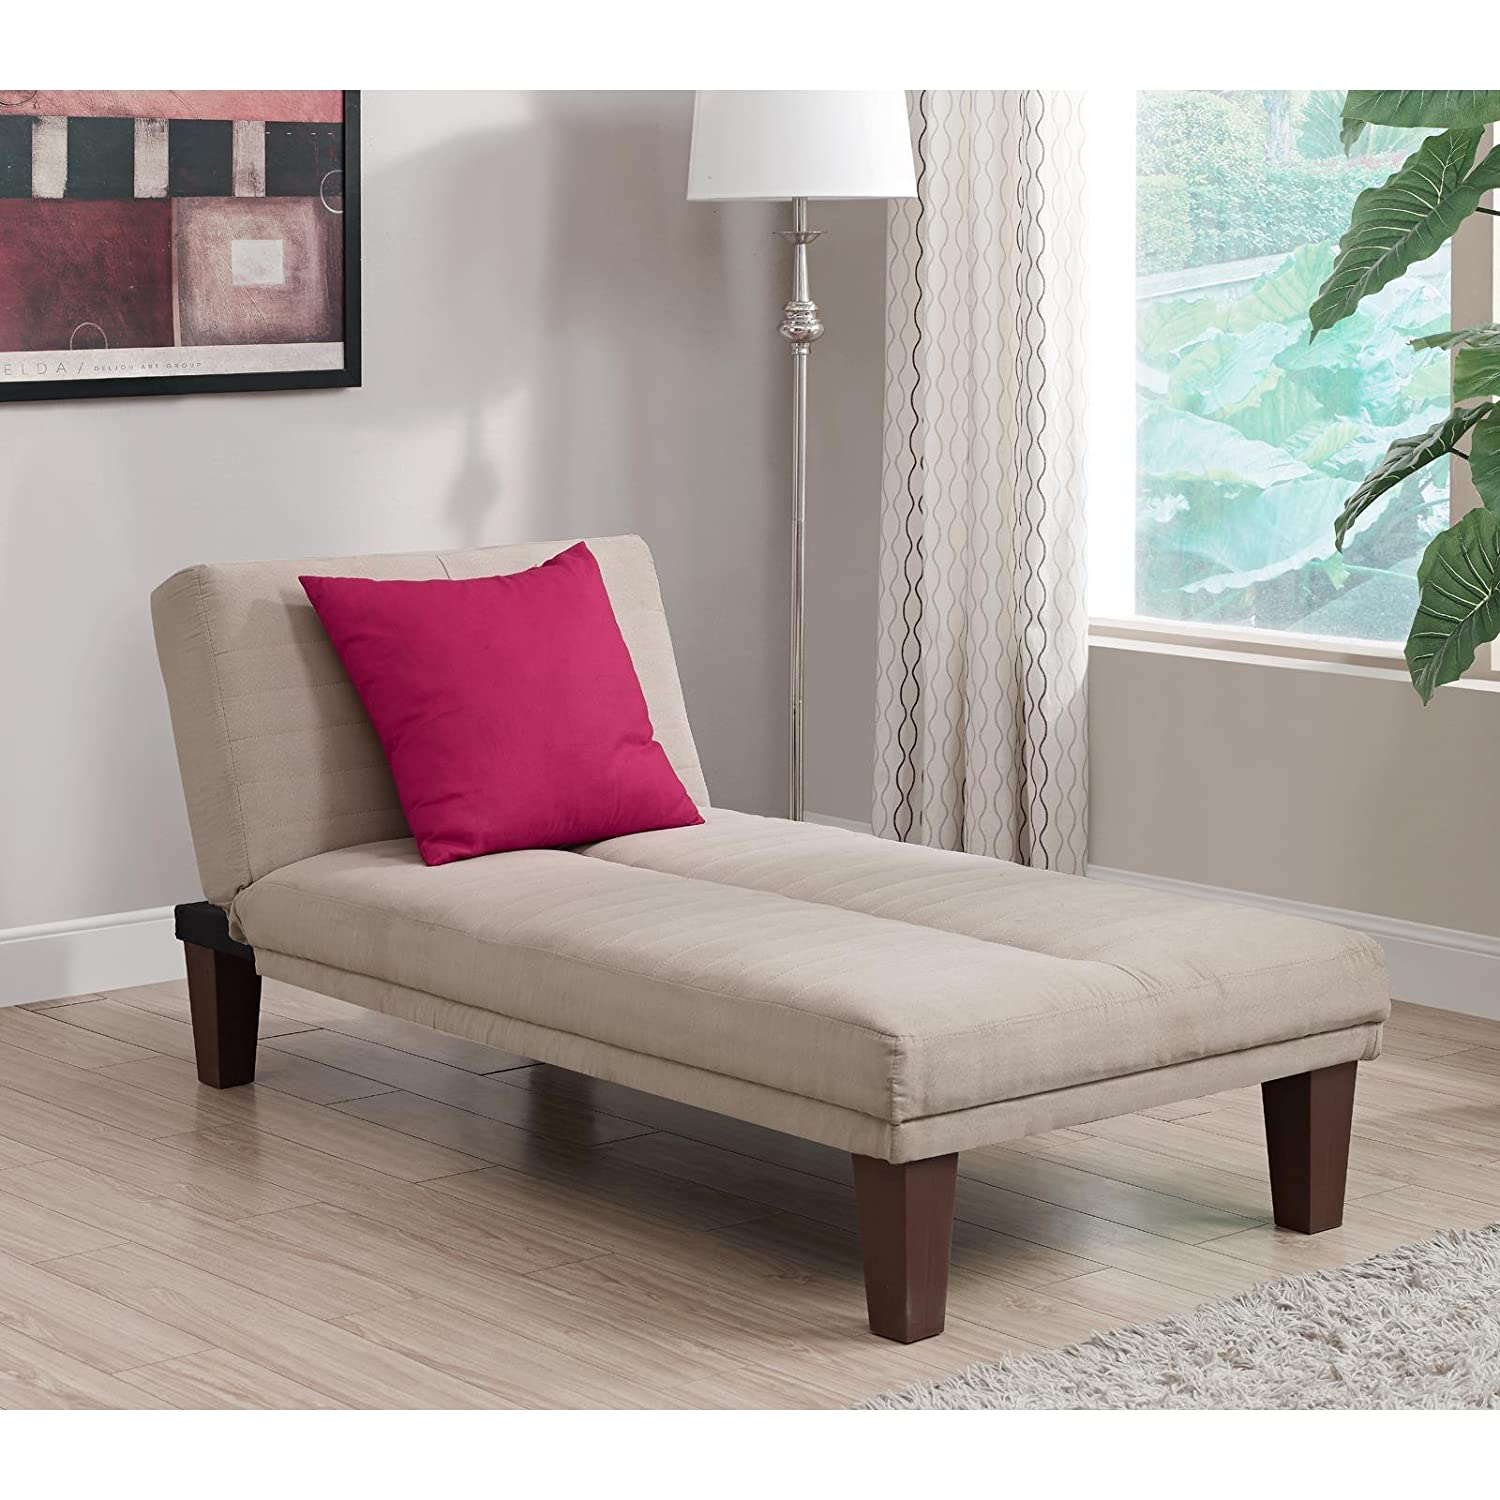 Contemporary Chaise Lounge - Seat Couch Sleeper Indoor Home Furniture Living Room Bedroom Guest Relaxation : bedroom chaise - Sectionals, Sofas & Couches